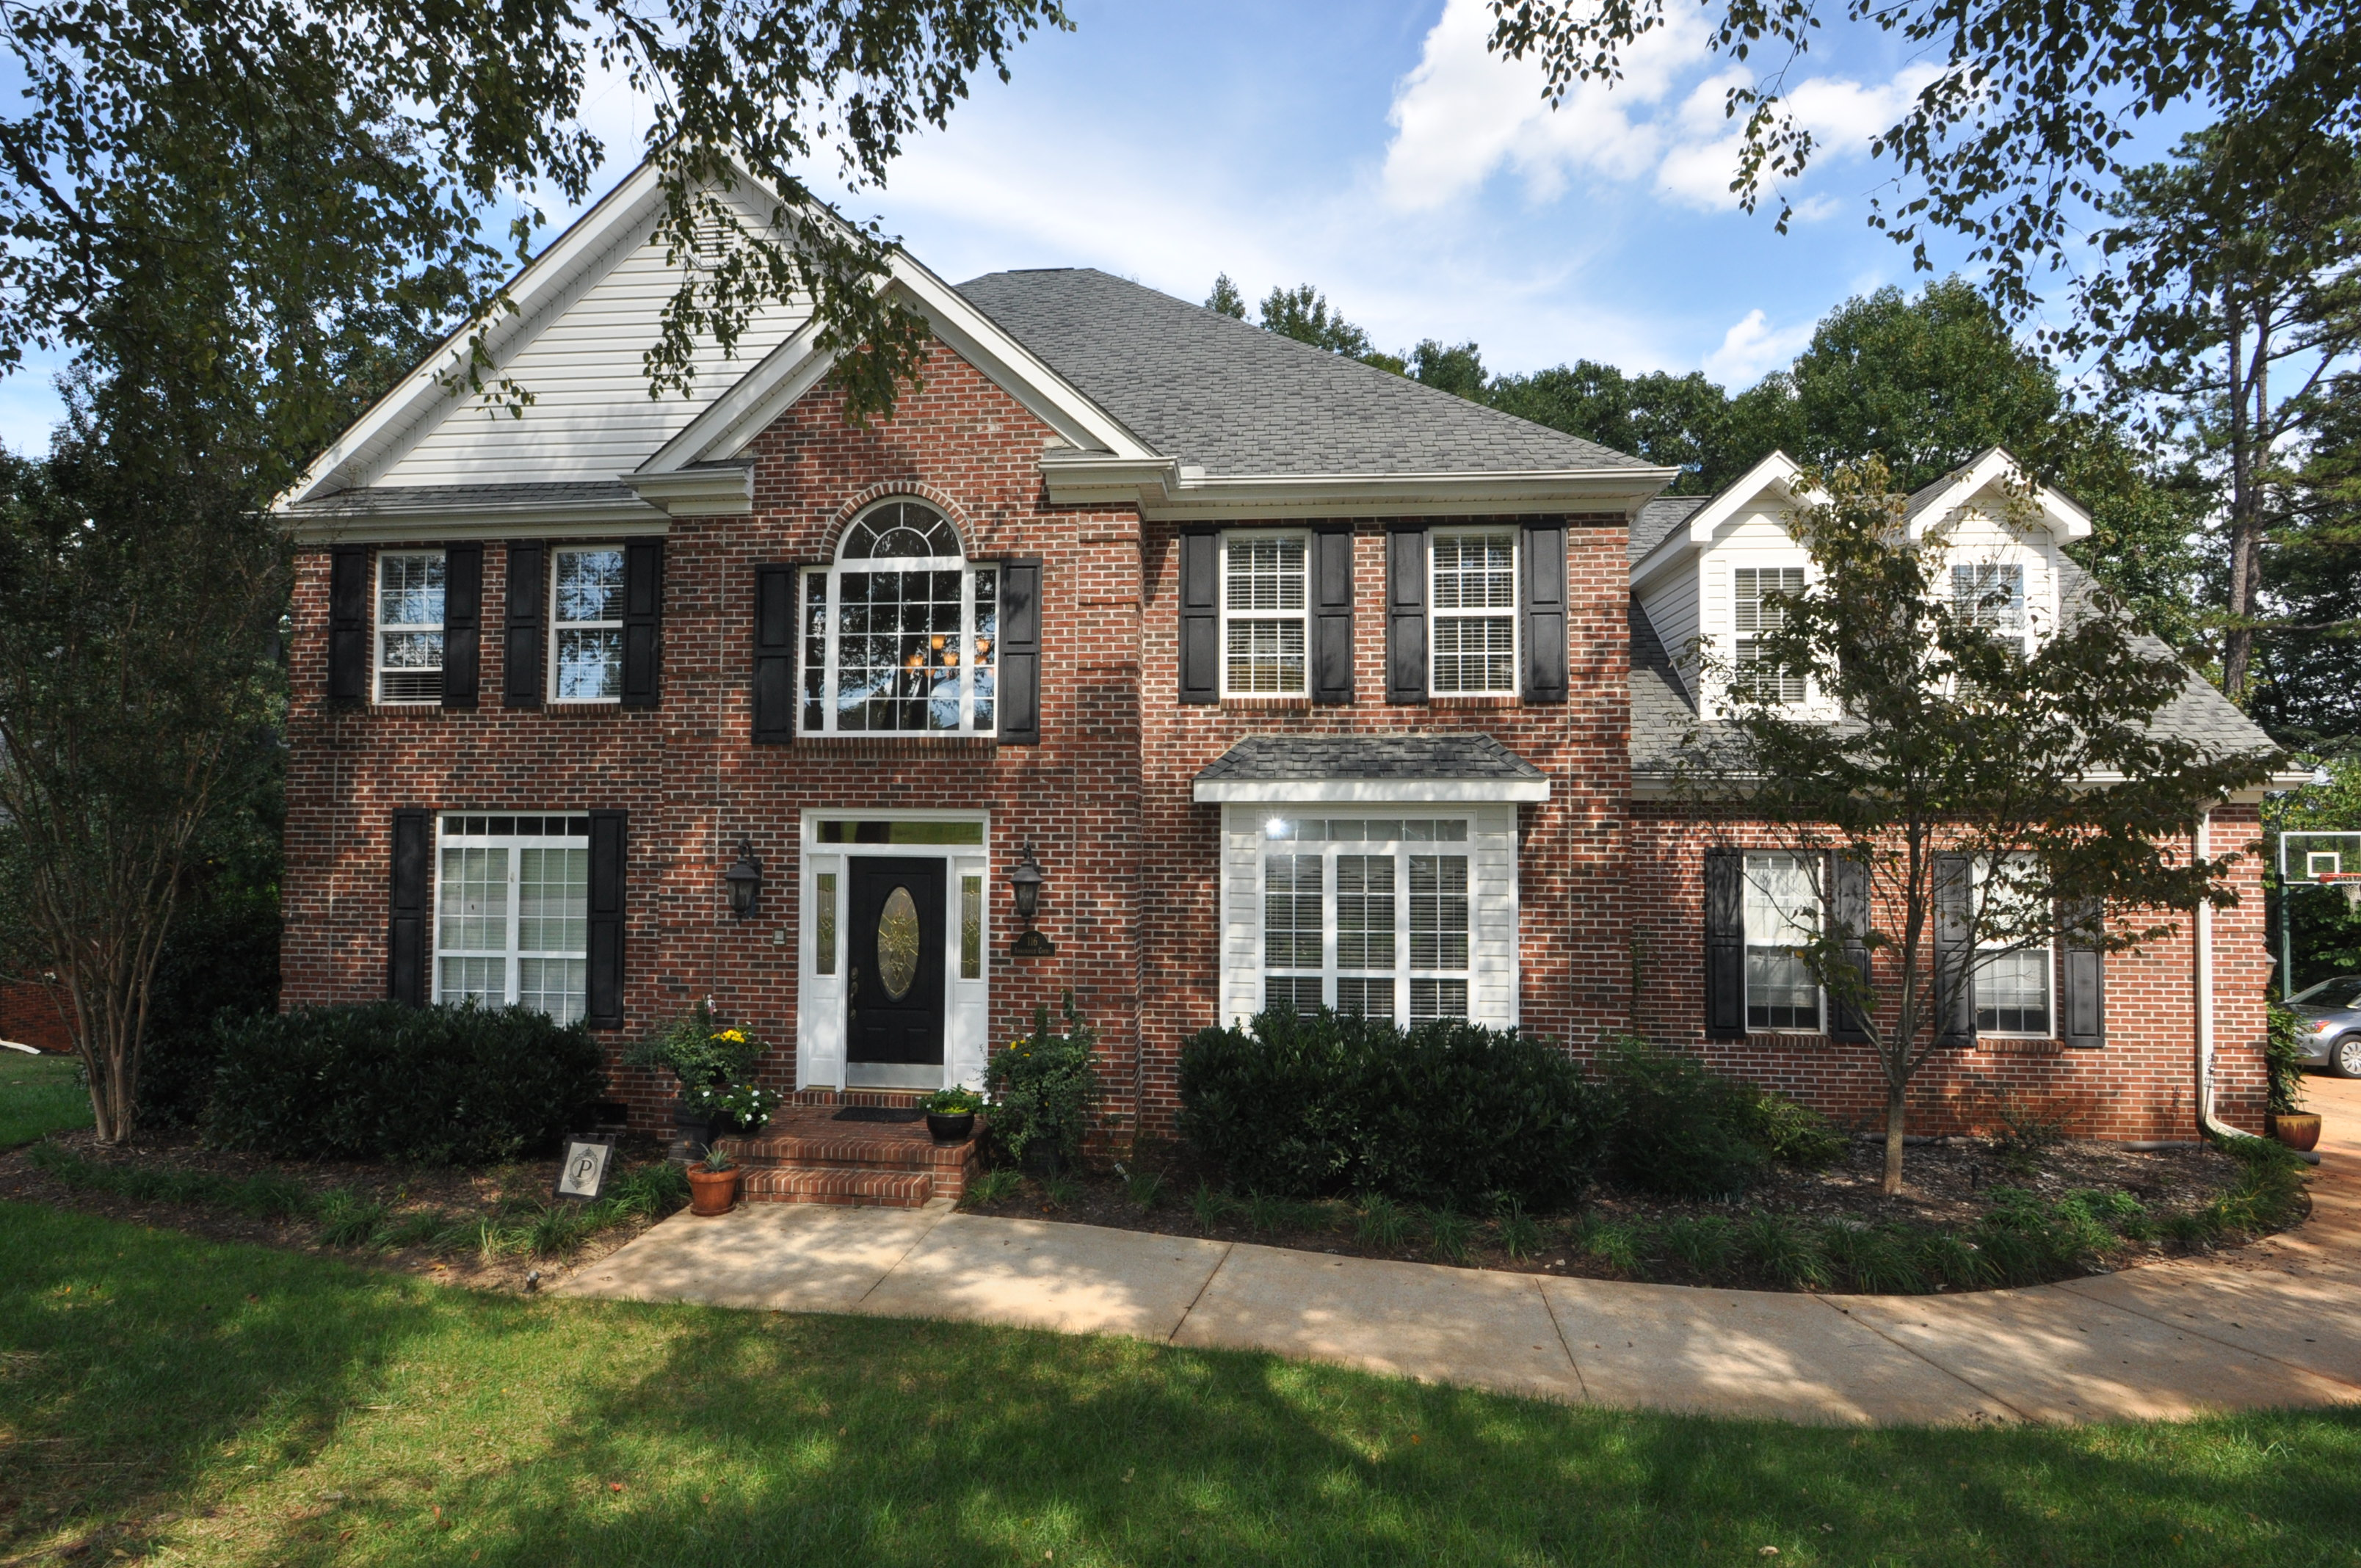 Home for sale greenville